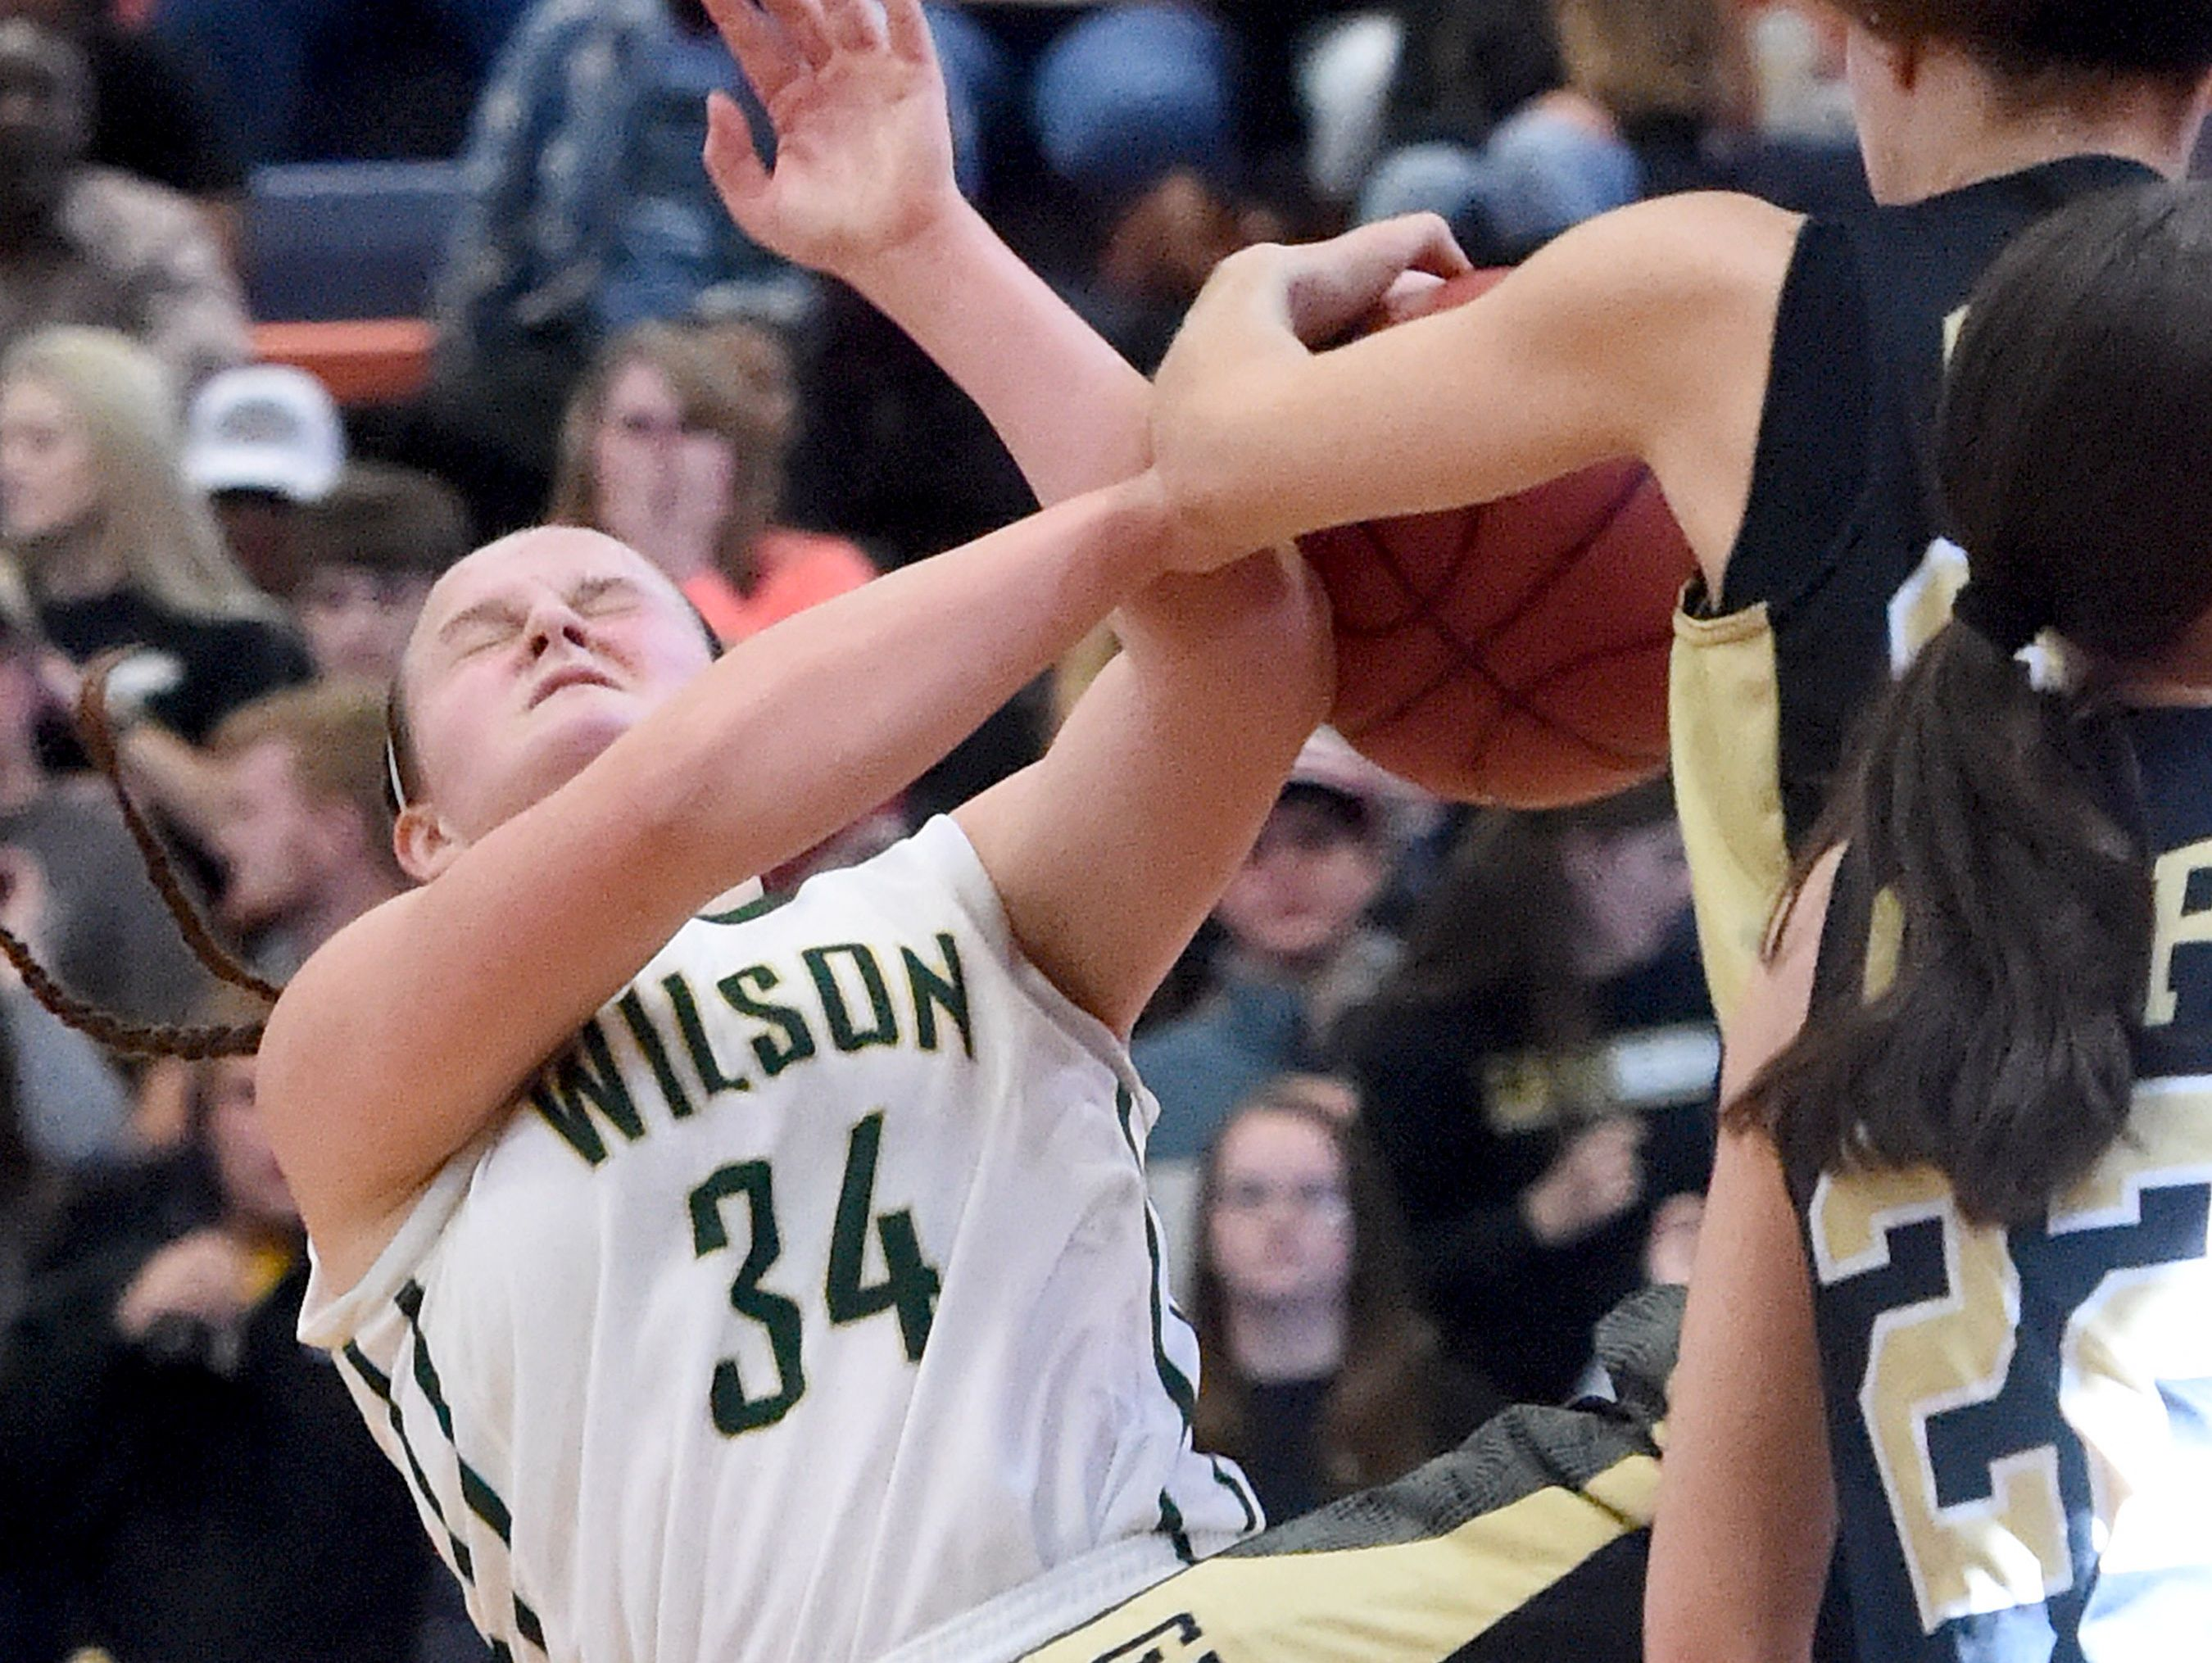 Wilson Memorial's Cheridan Hatfield looses the ball as she tries to take it up to the basket as it is stripped away by Buffalo Gap's Destiny Harper during the Region 2A East girls basketball championship played in Orange on Saturday, Feb. 27, 2016.